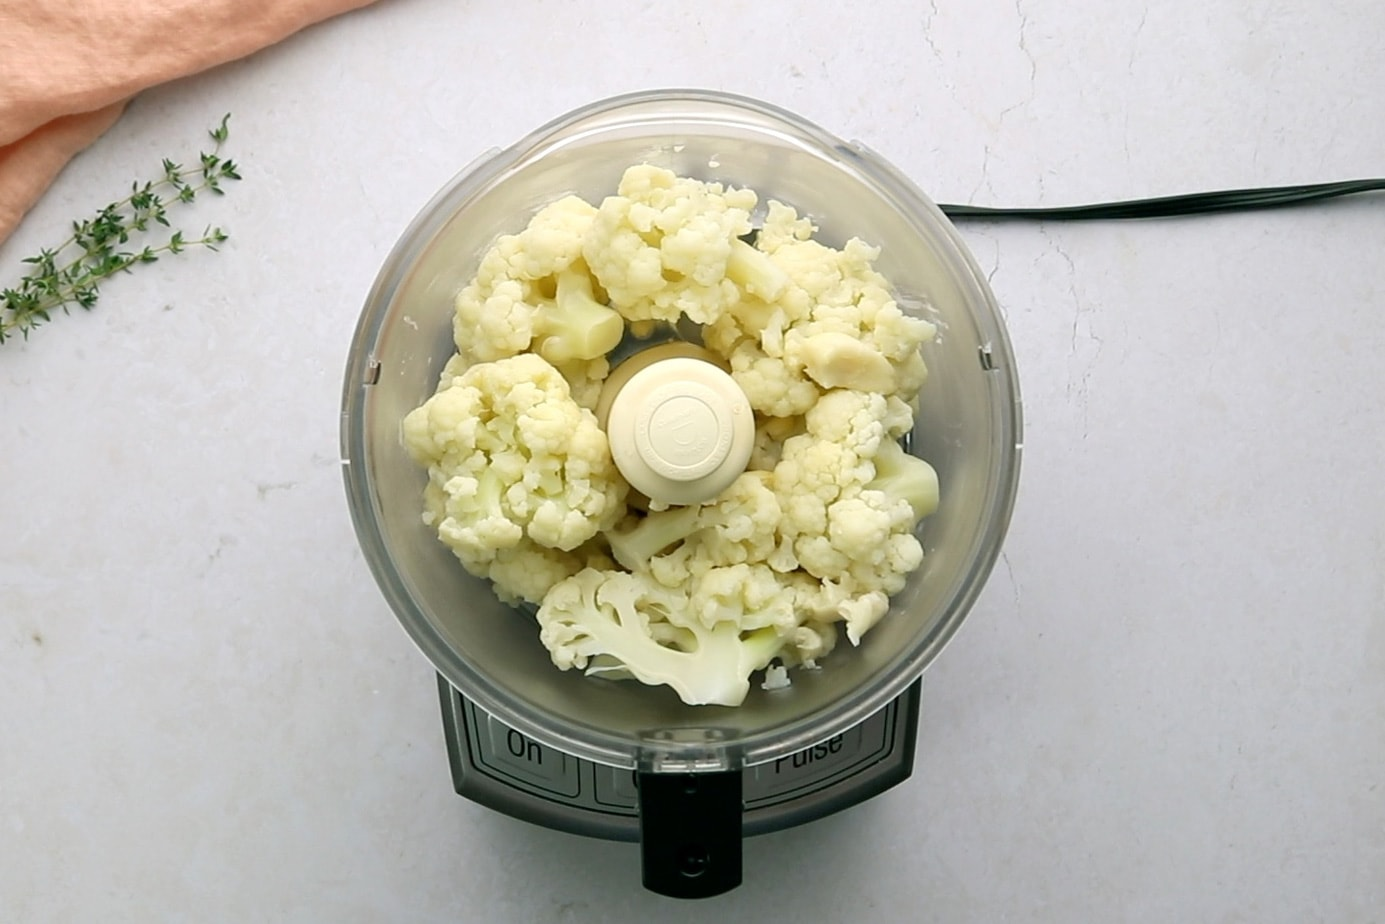 Cooked cauliflower and garlic in a food processor viewed from overhead.